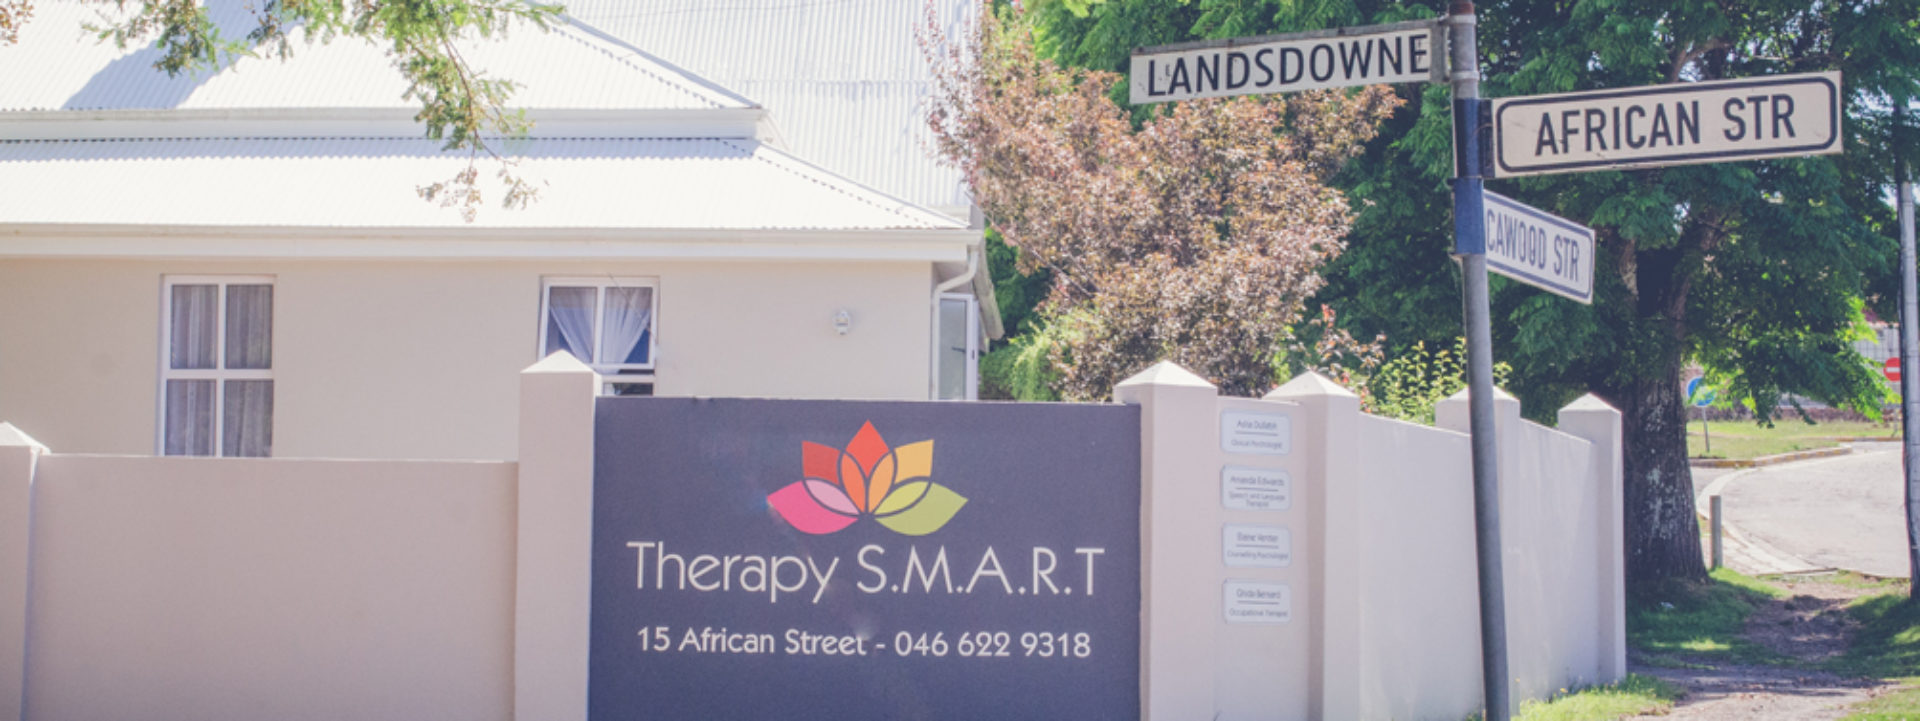 Therapy S.M.A.R.T.